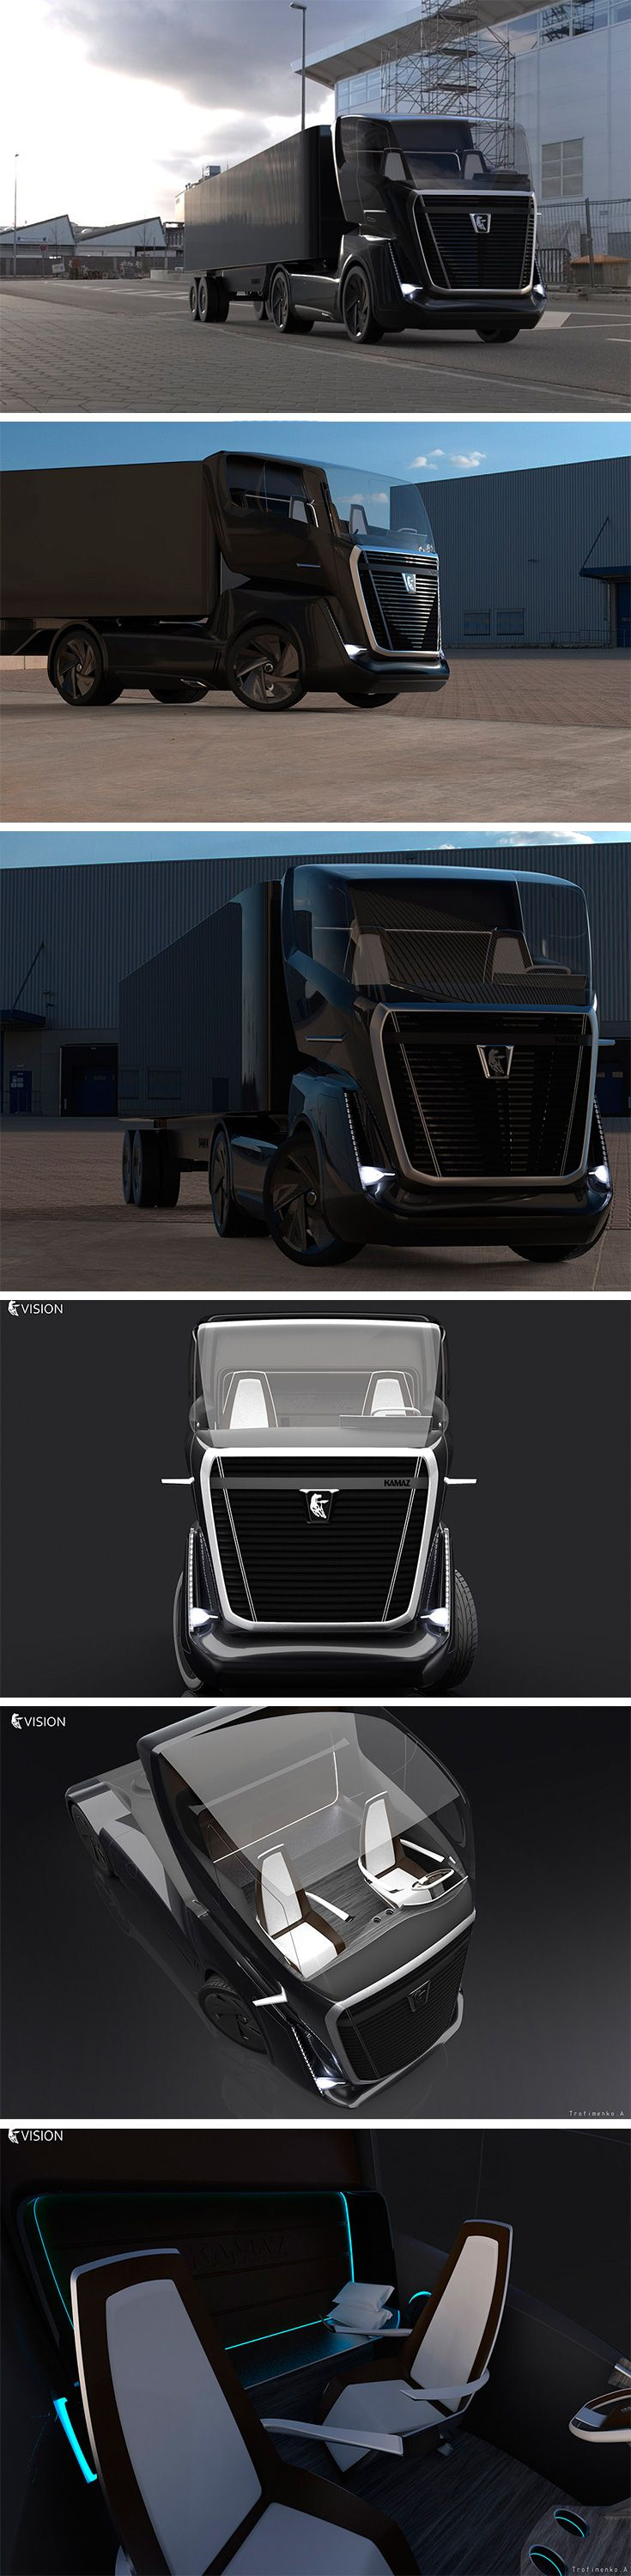 Artyom Trofimenko's concept KAMAZ Vision truck's design does what it can to minimize wind resistance with a slicked back panoramic top glass section and air-directing surfaces, in a menacing all black.